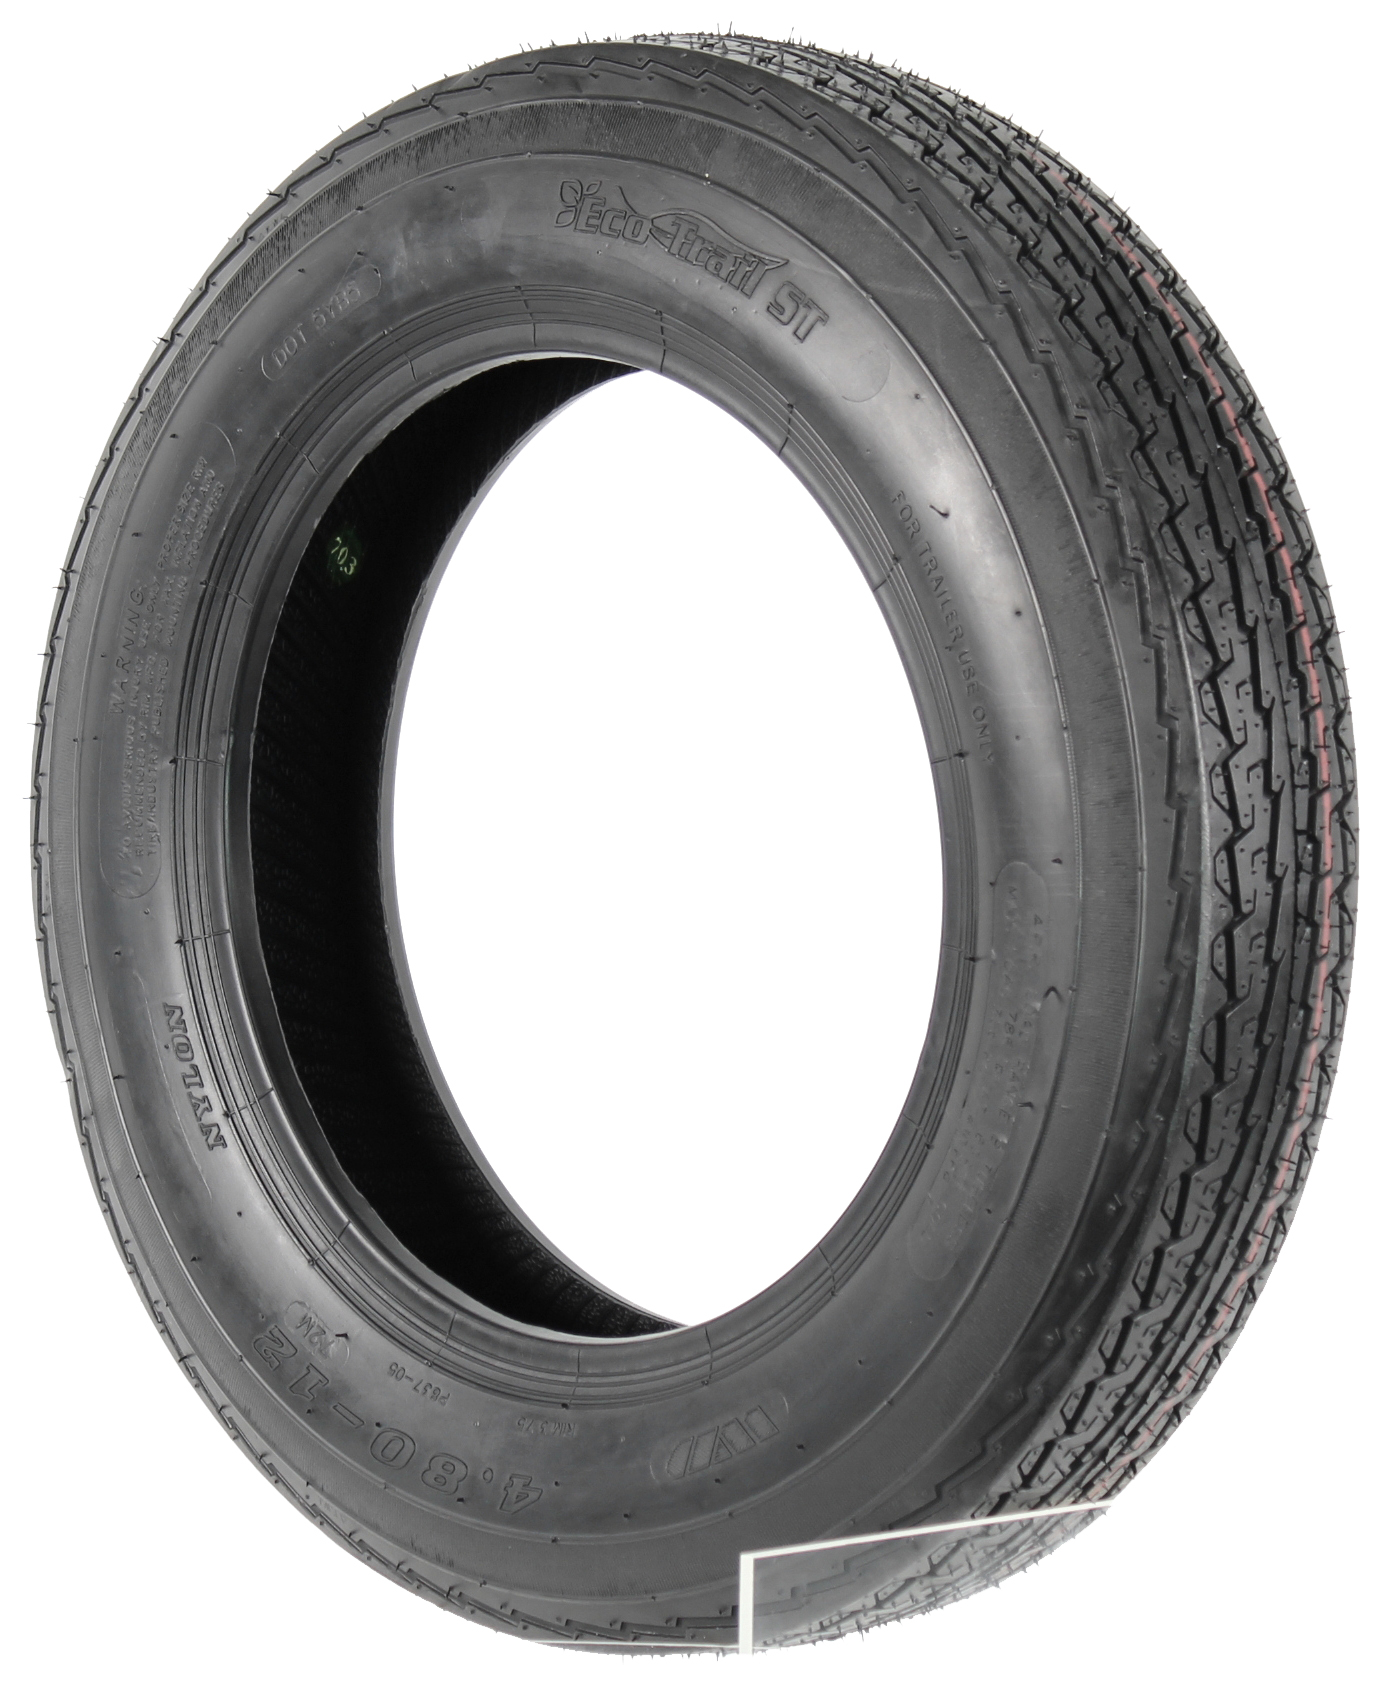 Eco-Trail 4.80x12 LRB Bias Trailer Tire Image